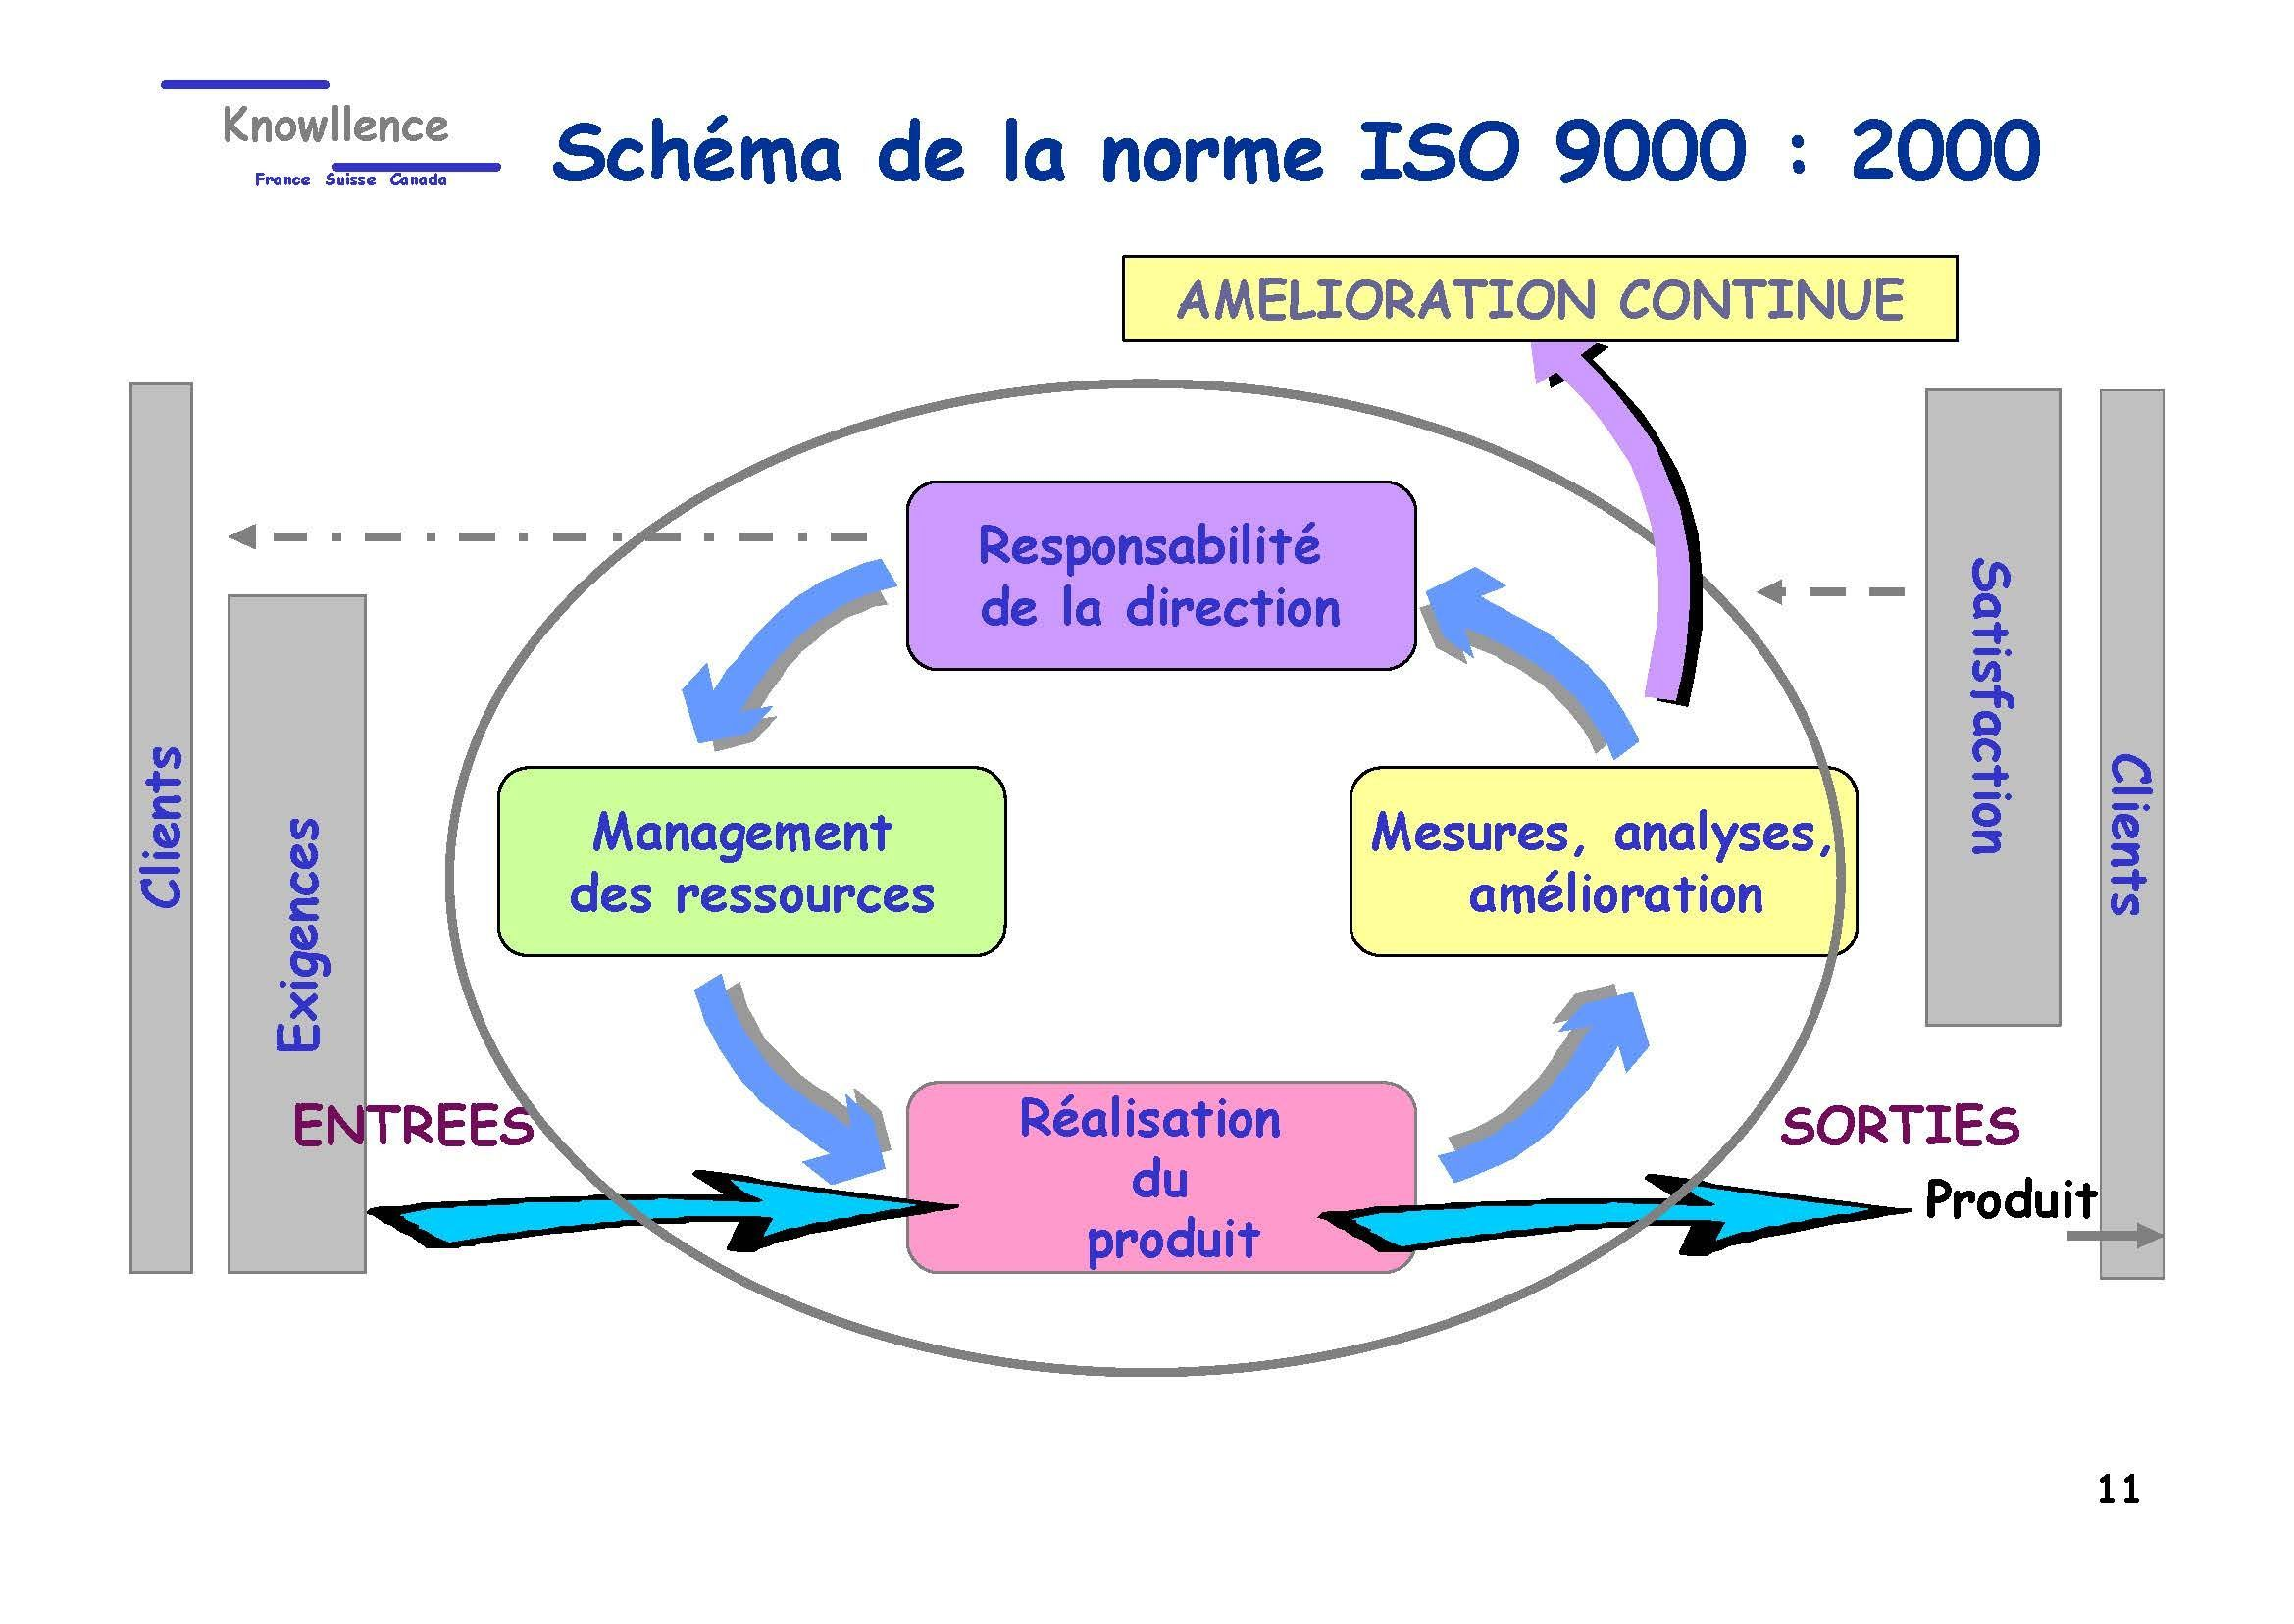 Système documentaire et cartographie ISO 9001-2000_Page_11